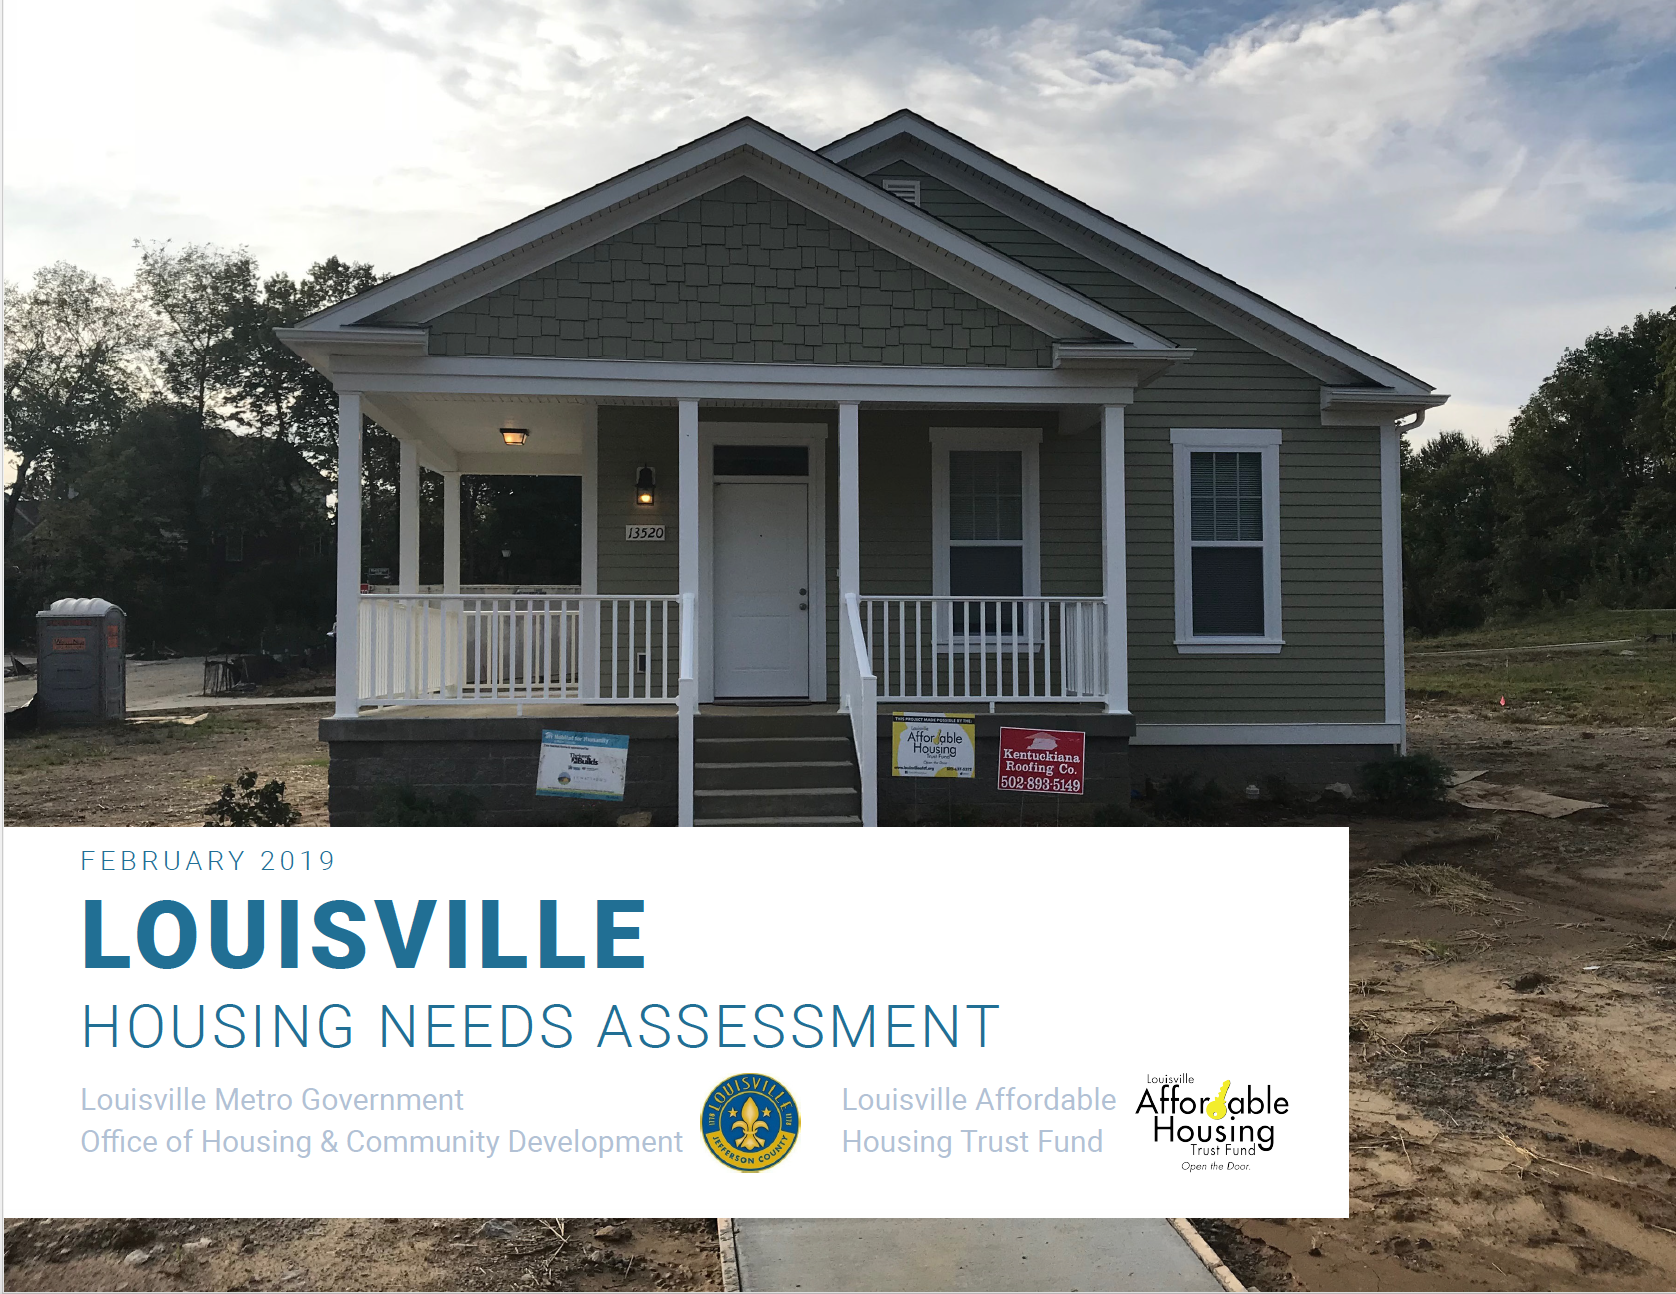 Louisville Housing Needs Assessment